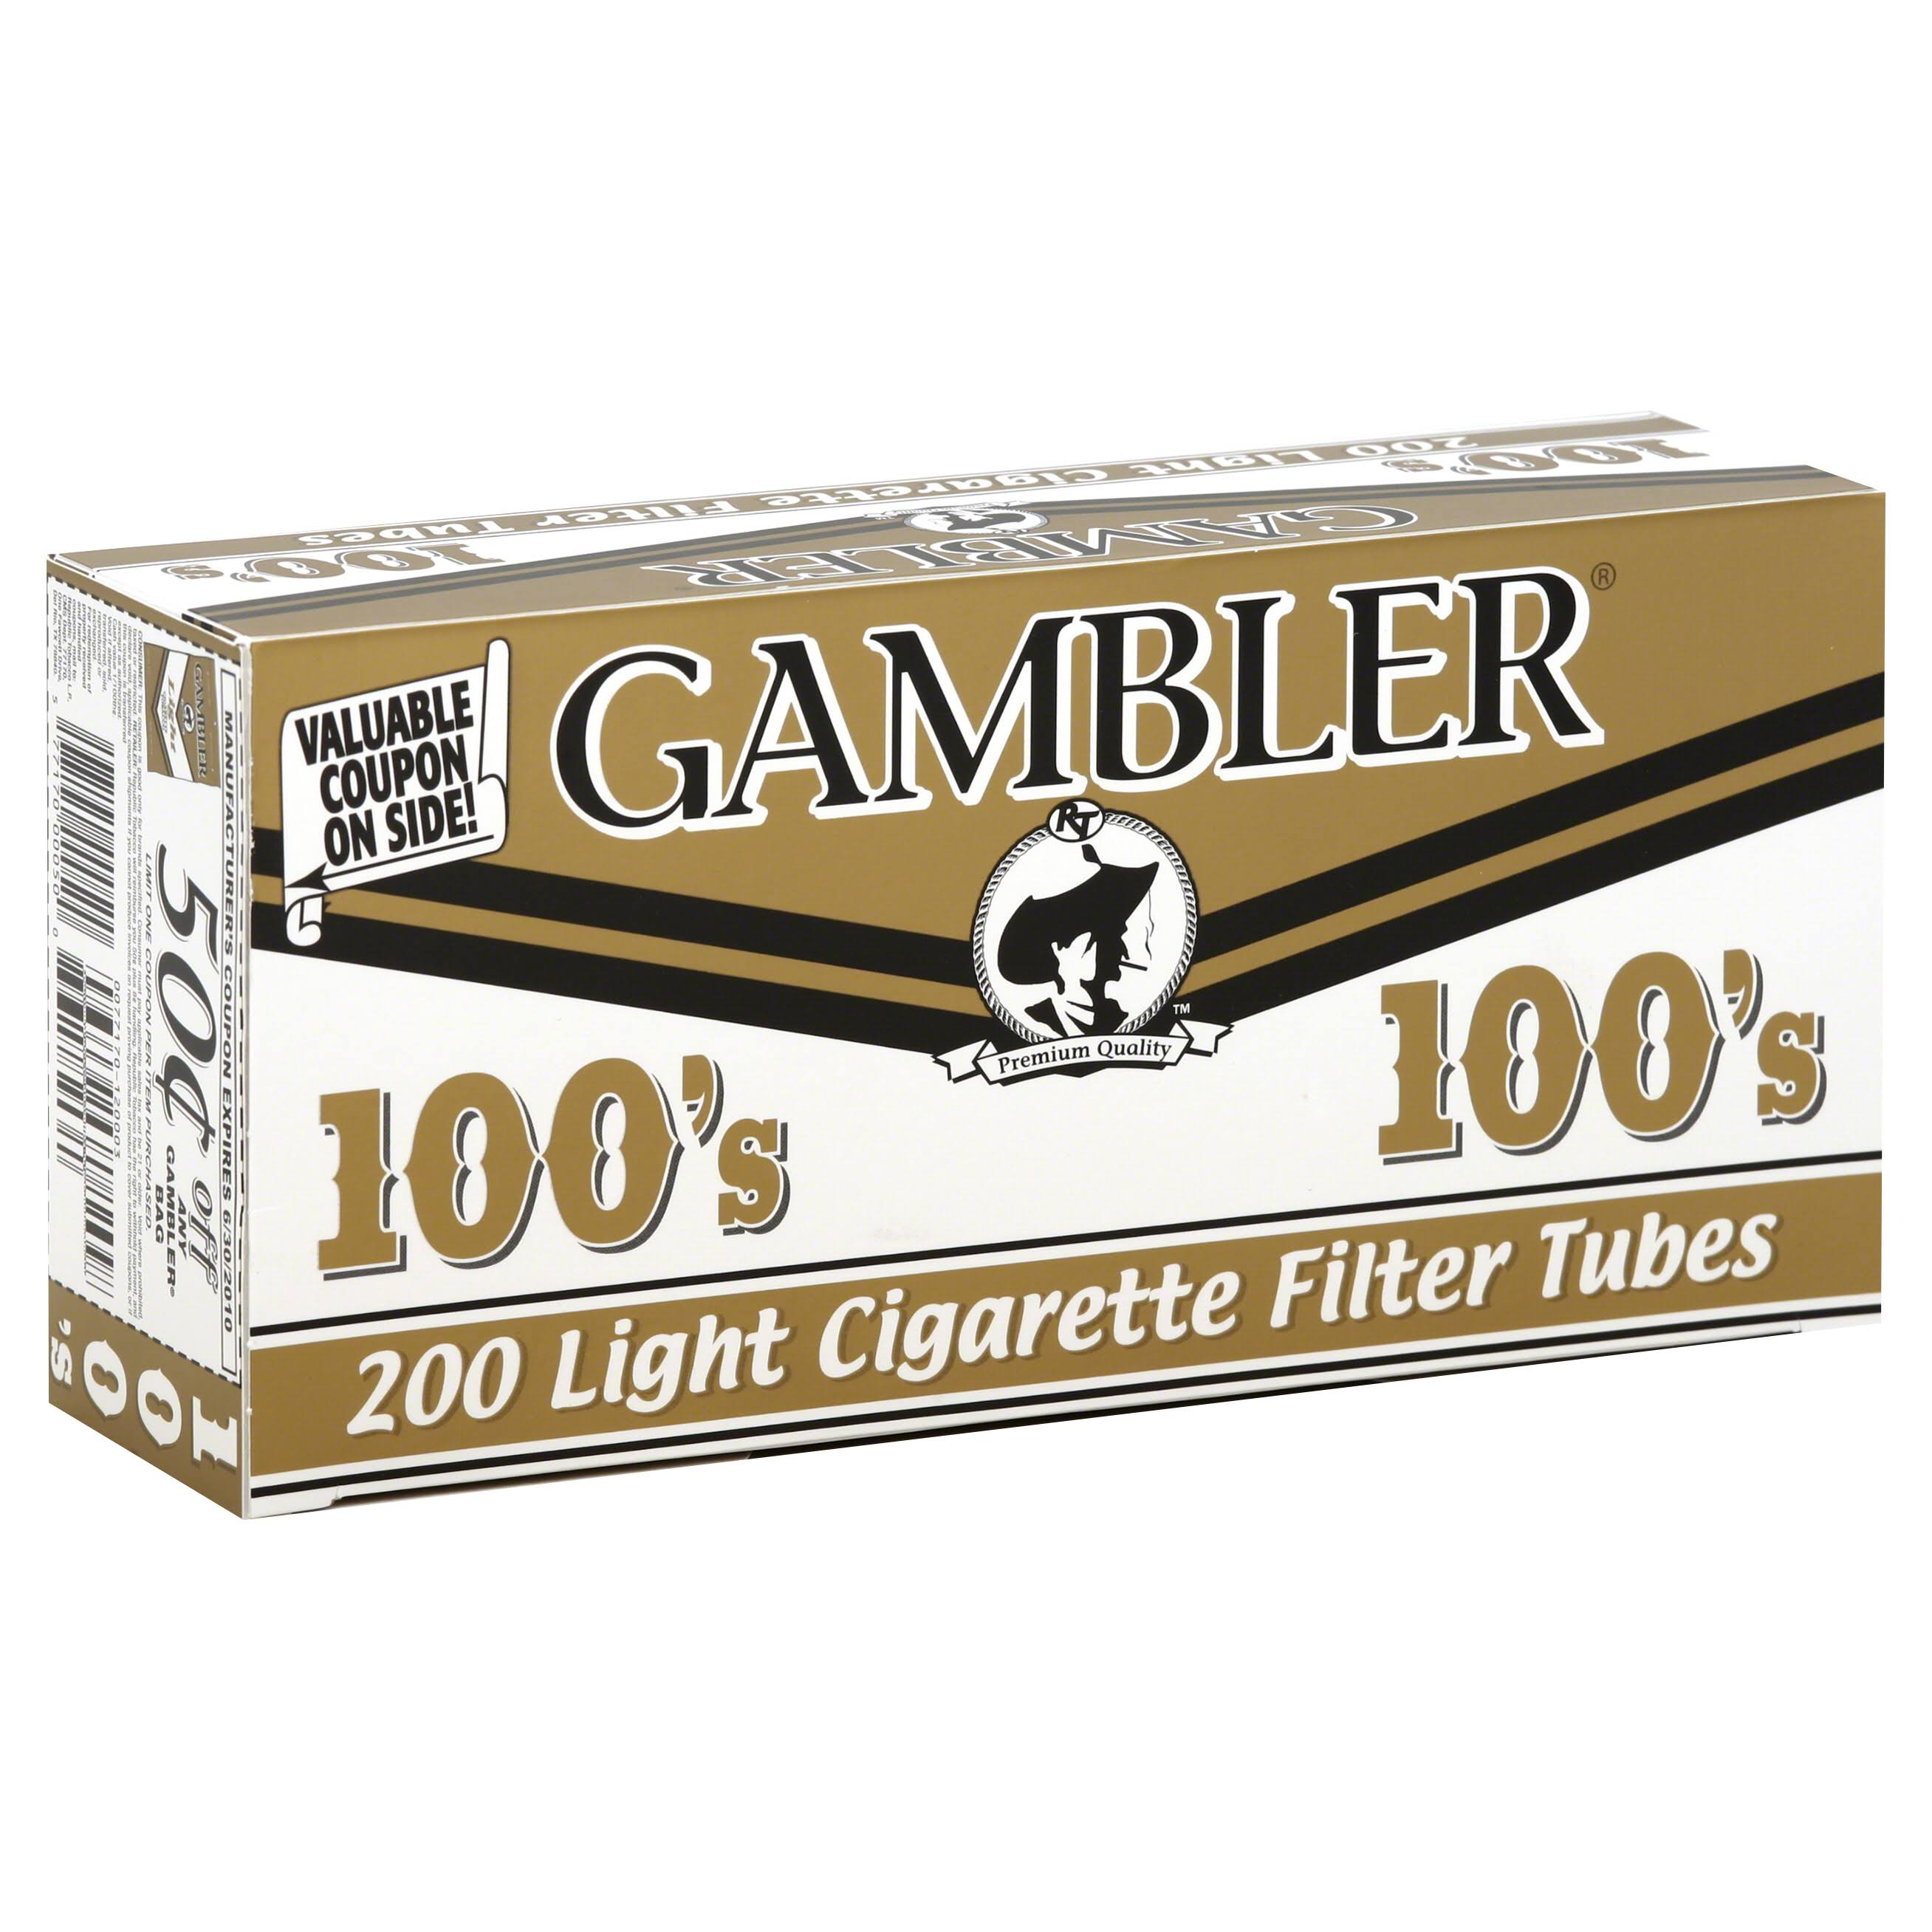 Gambler Cigarette Filter Tubes, Premium Quality, Light 100's - 200 tubes